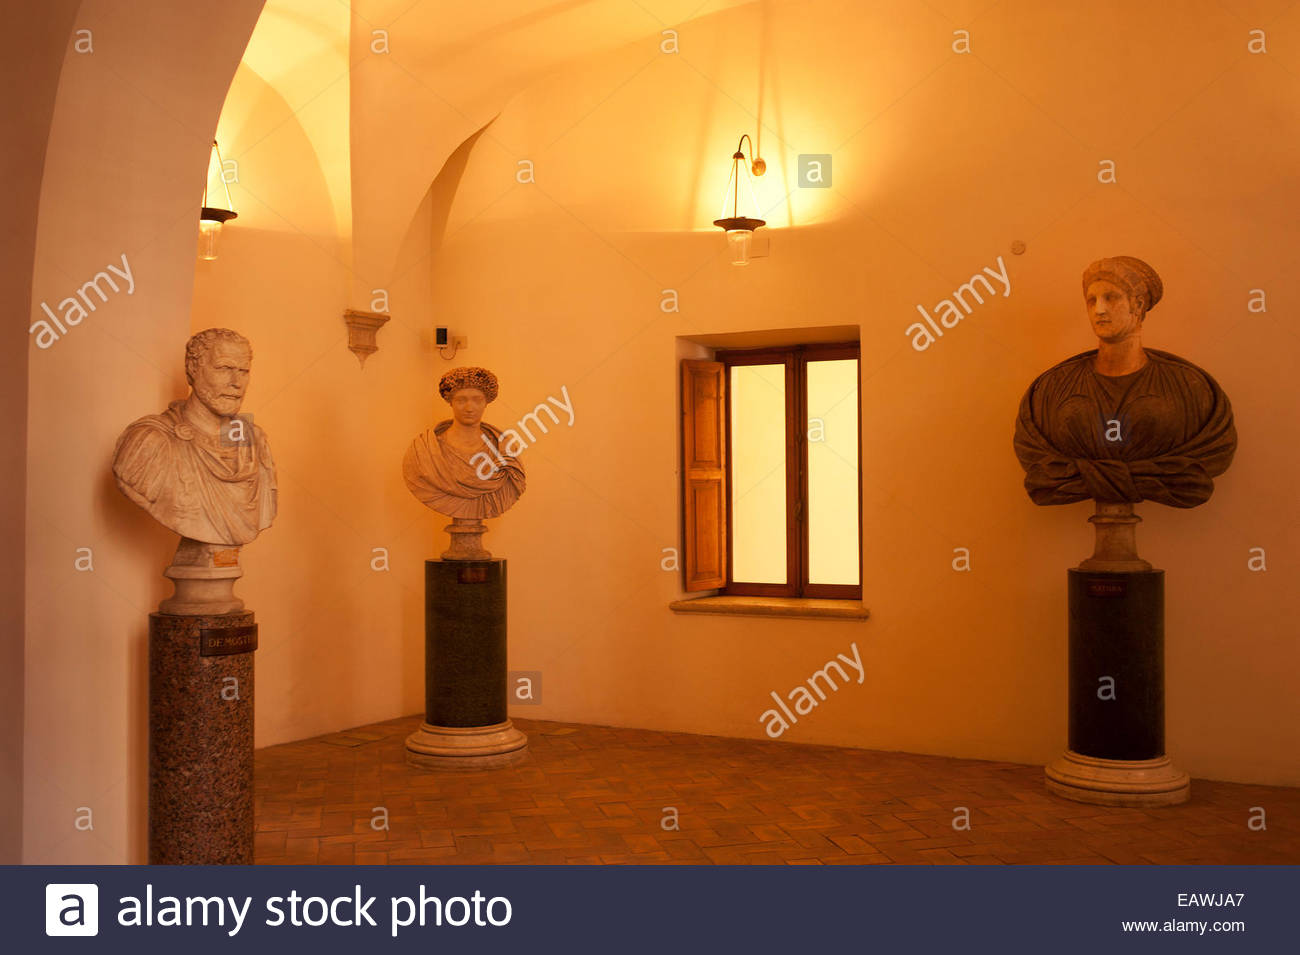 Portrait busts on display at the Palazzo Altemps in Rome. - Stock Image